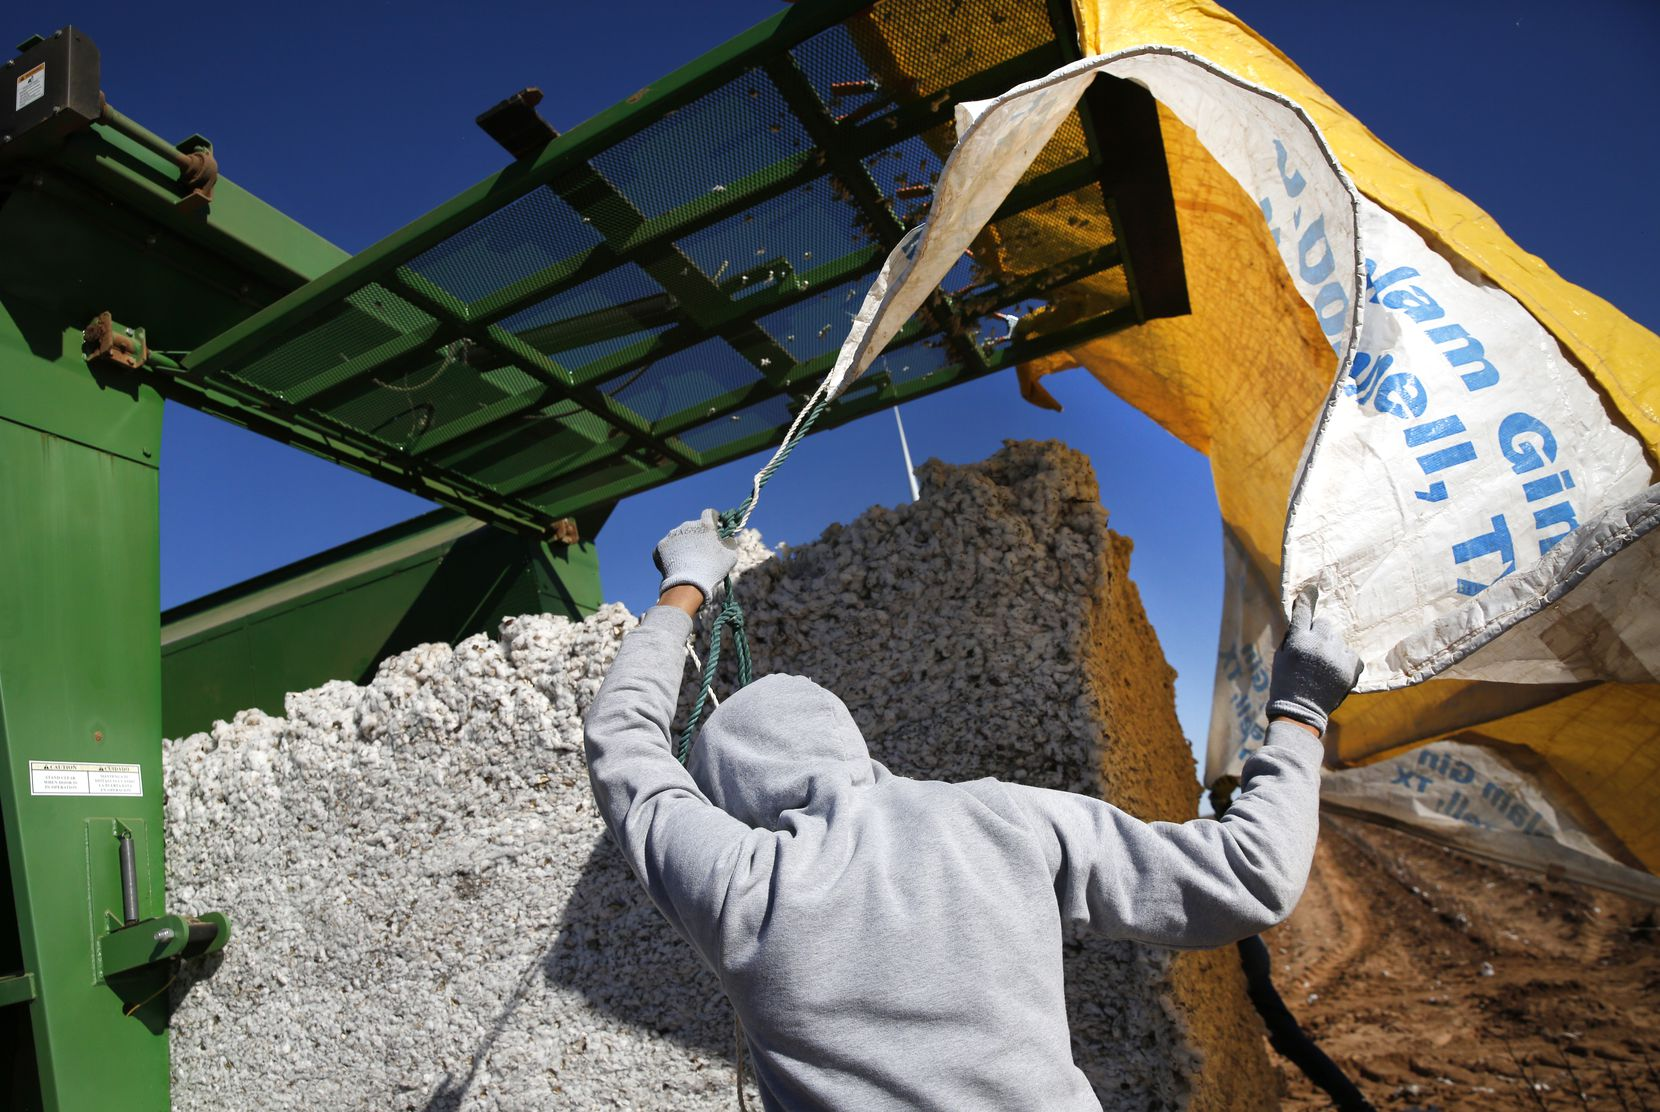 Charles Johnson pulls a tarp over a bale of cotton during the harvest at Matt Farmer's farm in Lynn County.